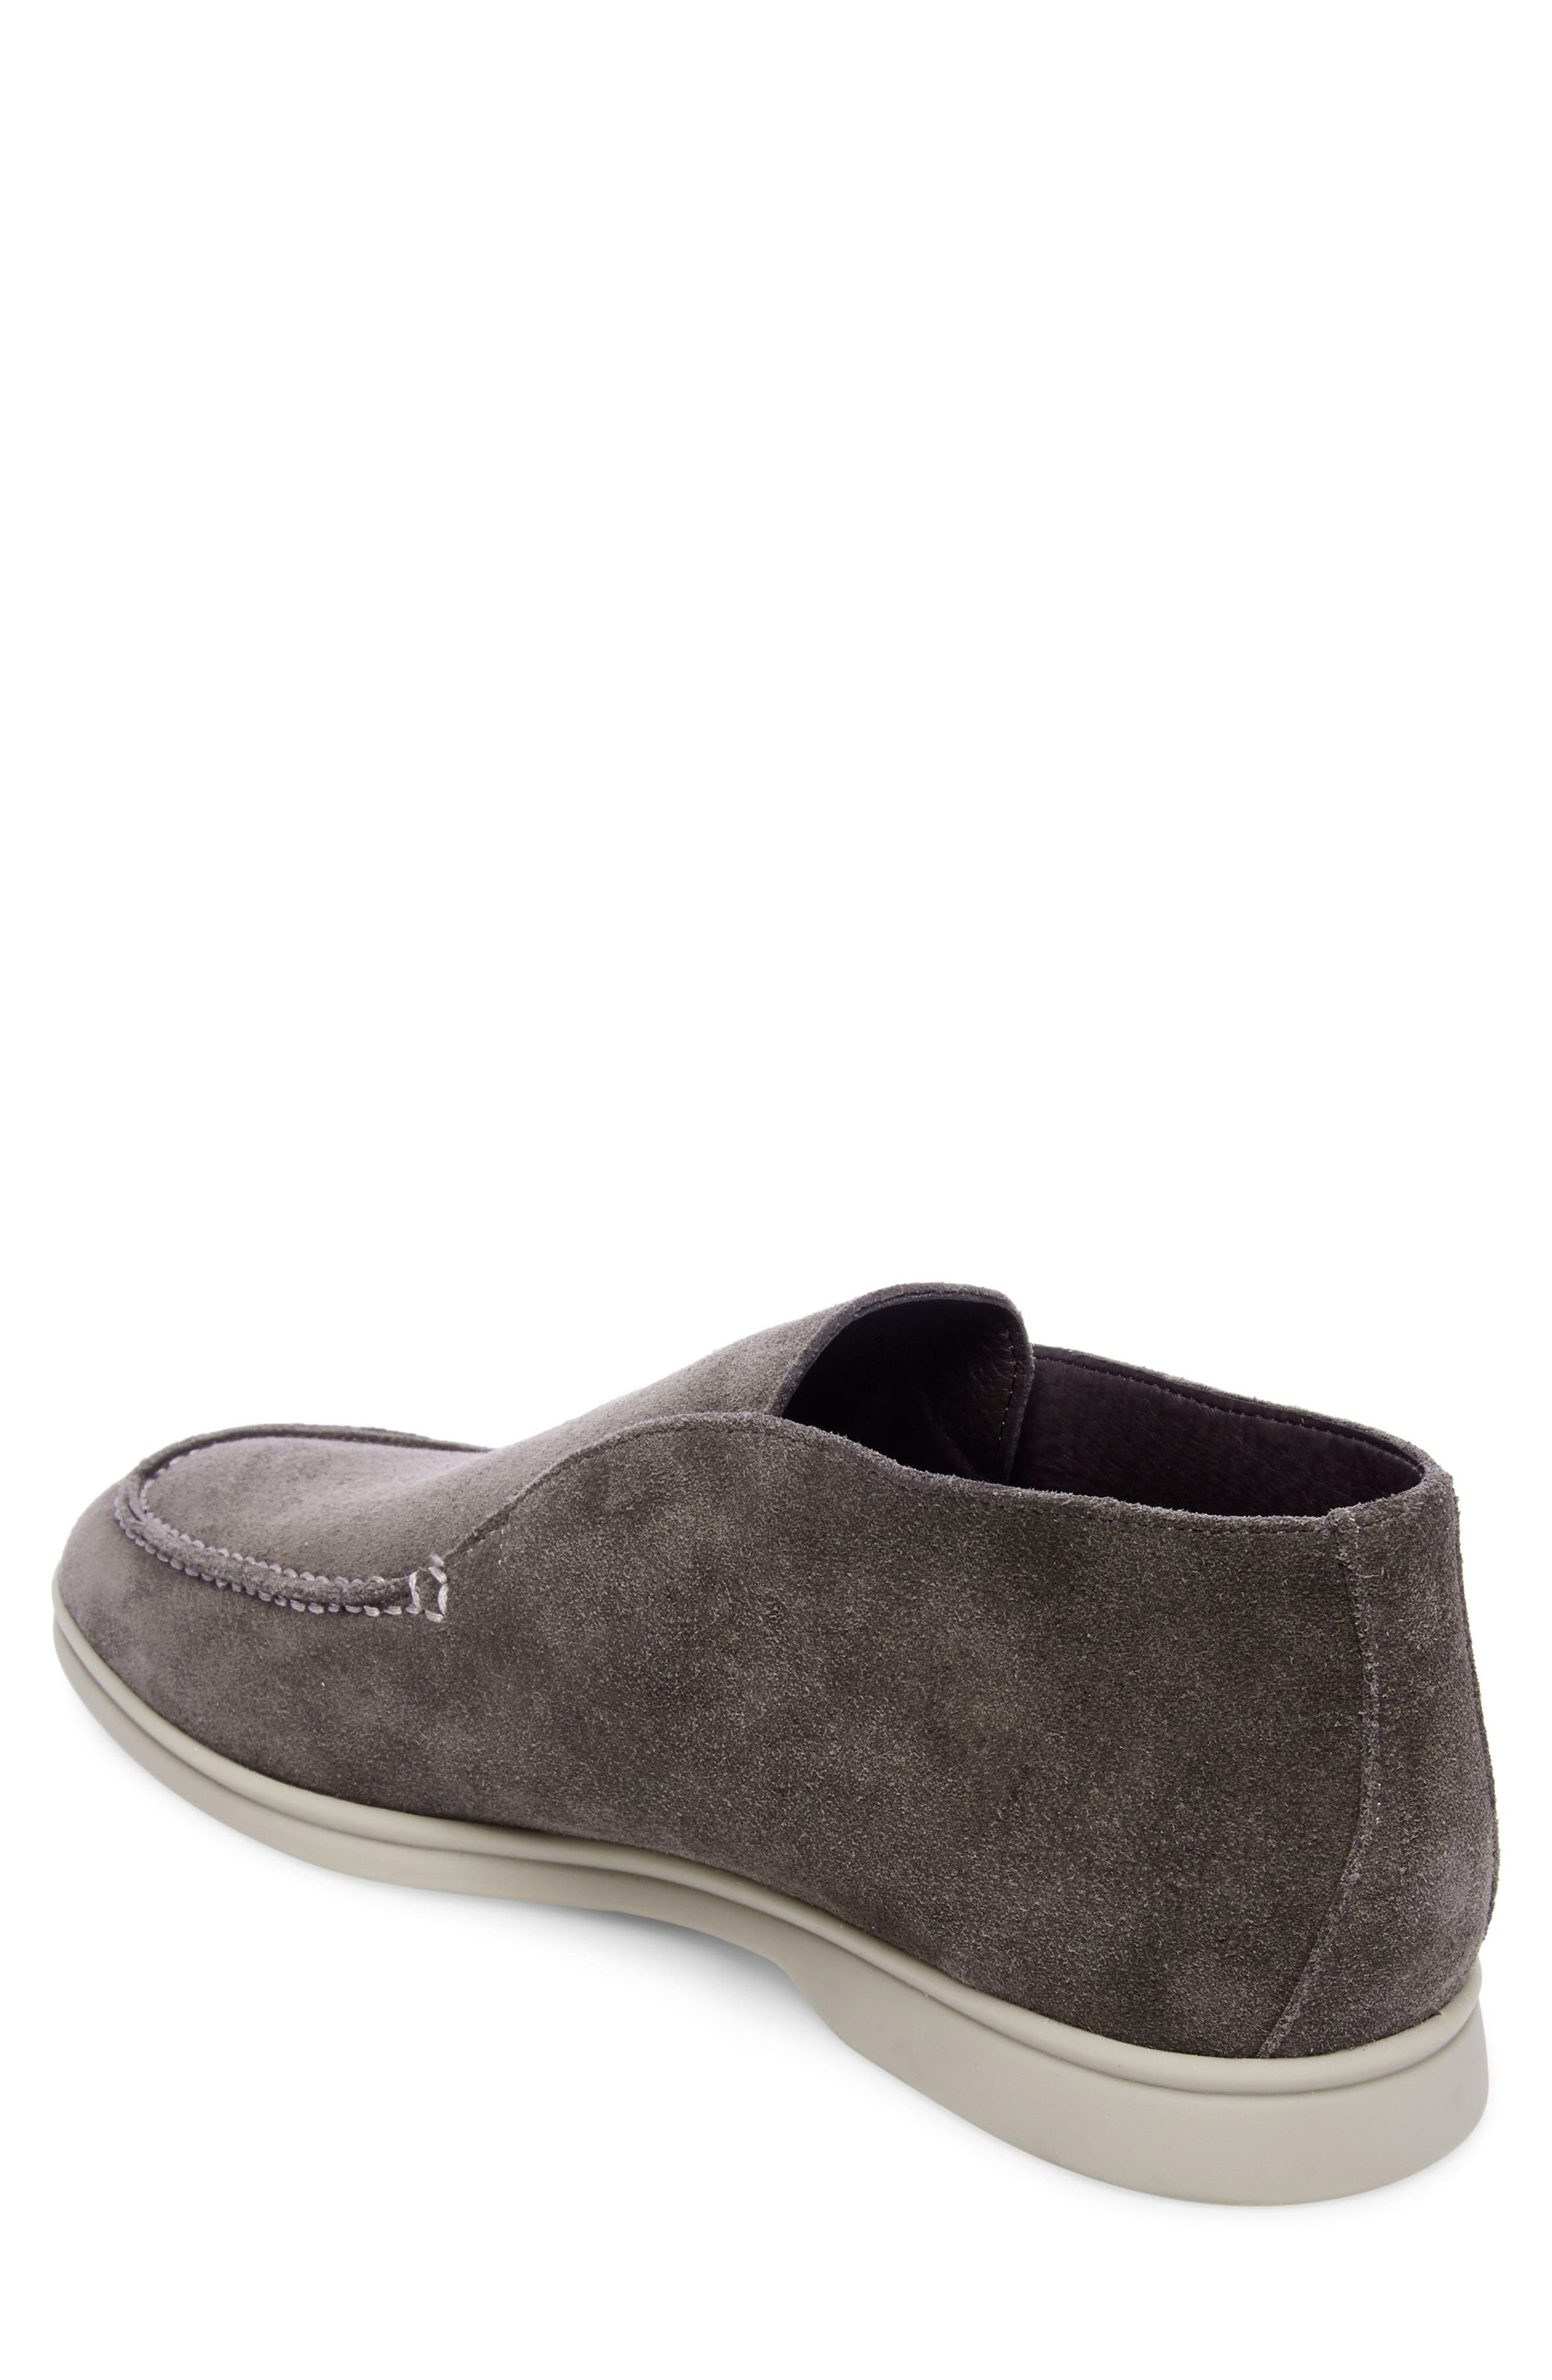 Lost Boot,                             Alternate thumbnail 2, color,                             Taupe Suede